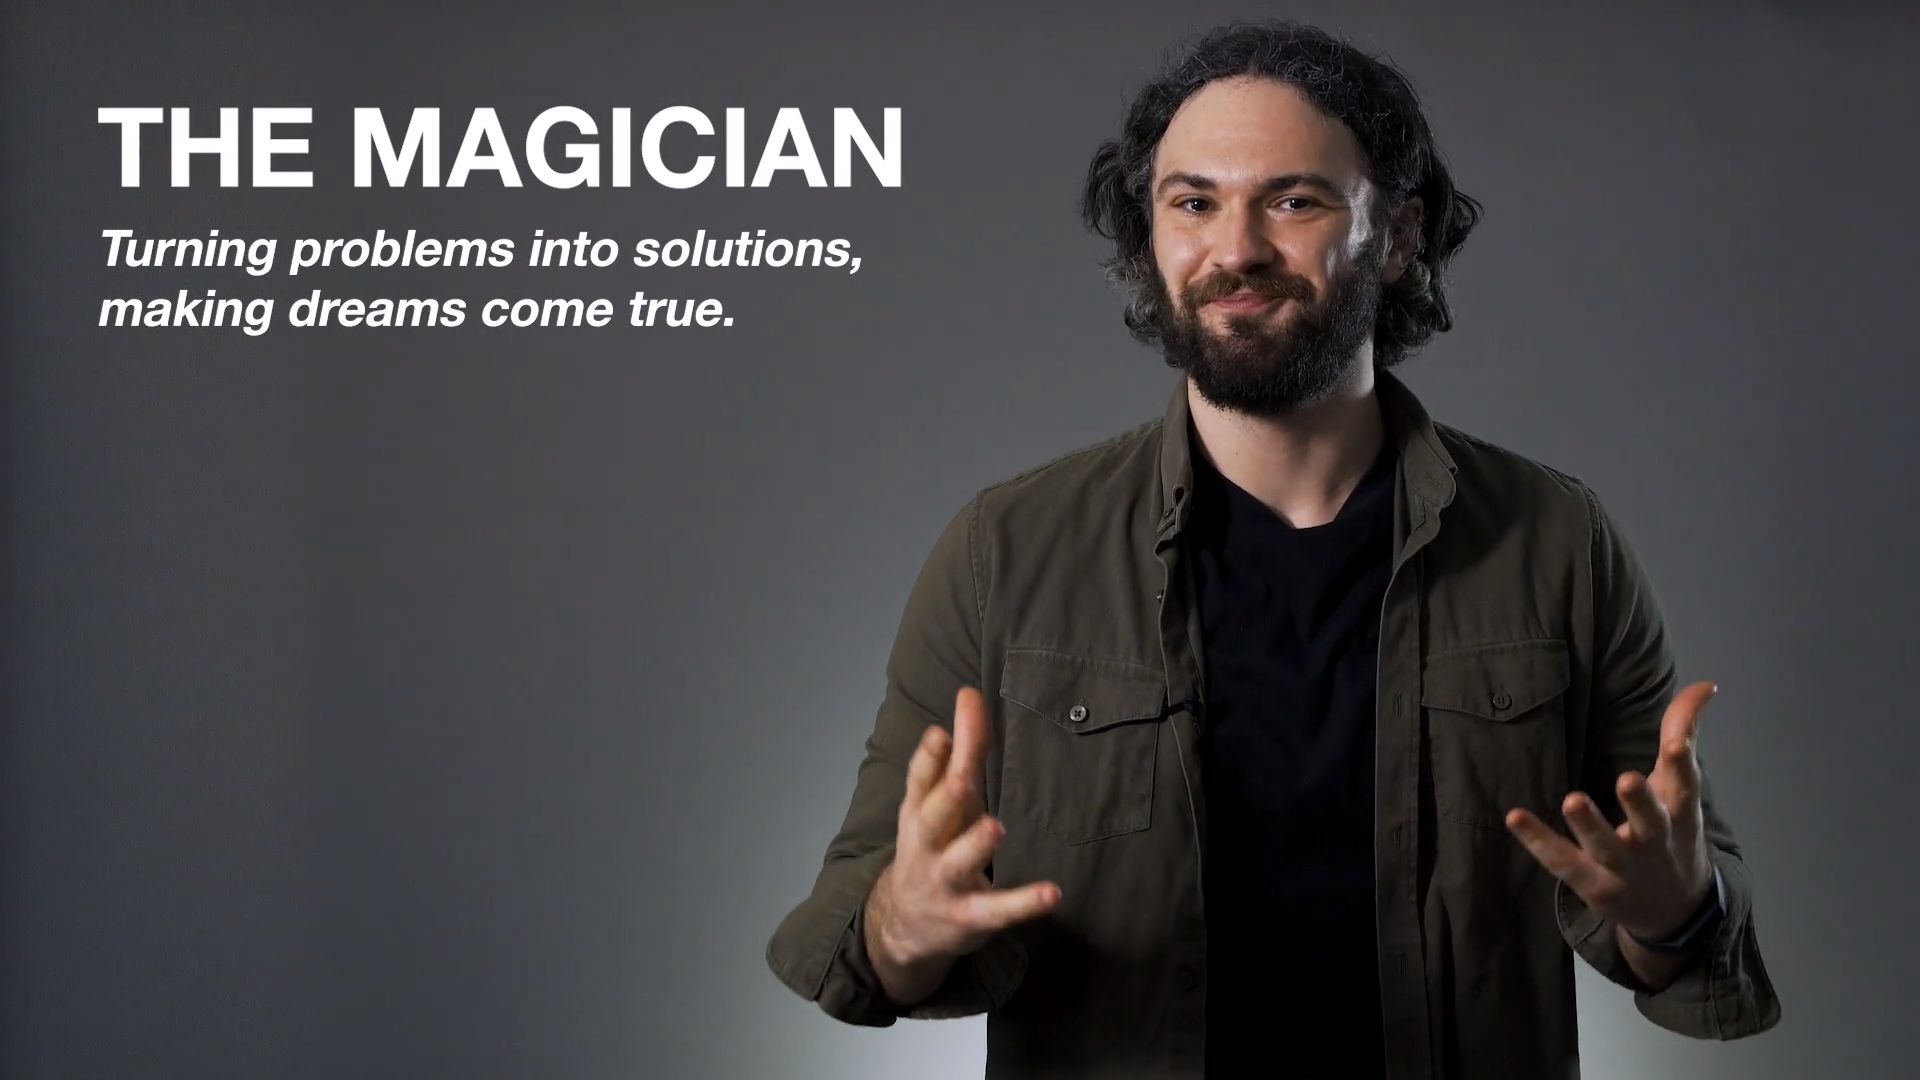 Video Guide To The 12 Brand Archetypes